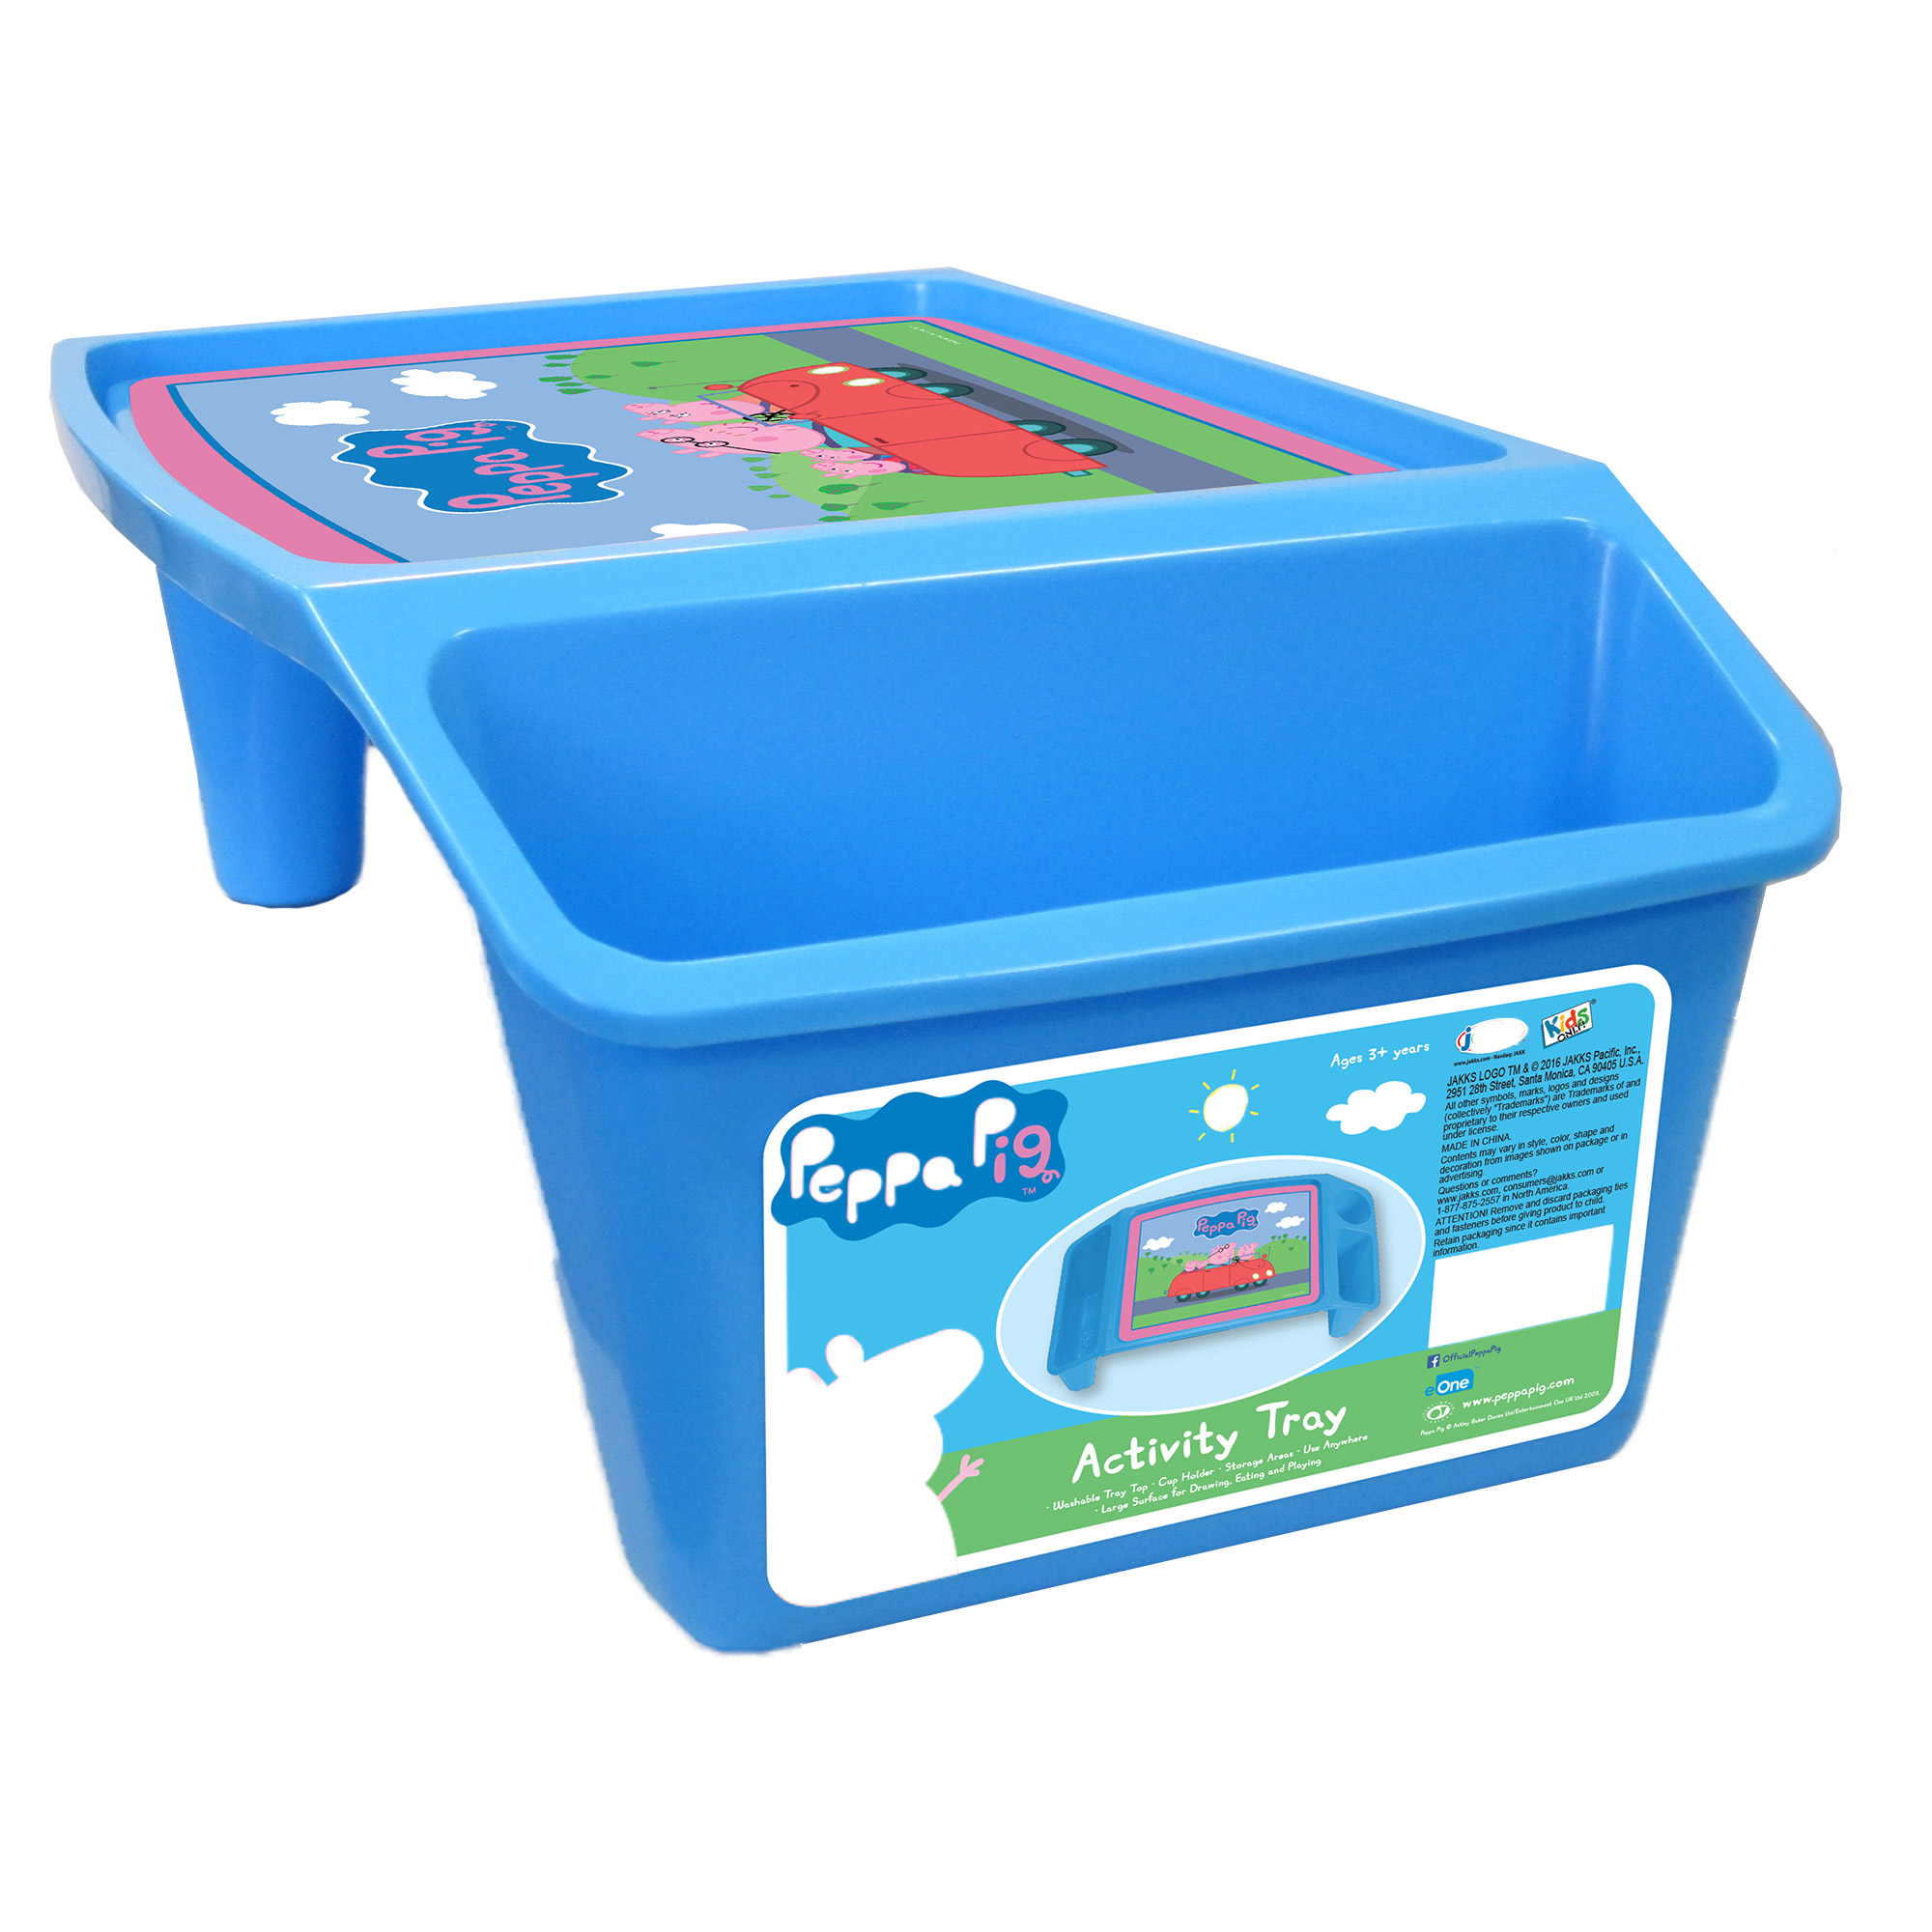 Peppa Pig Activity Tray